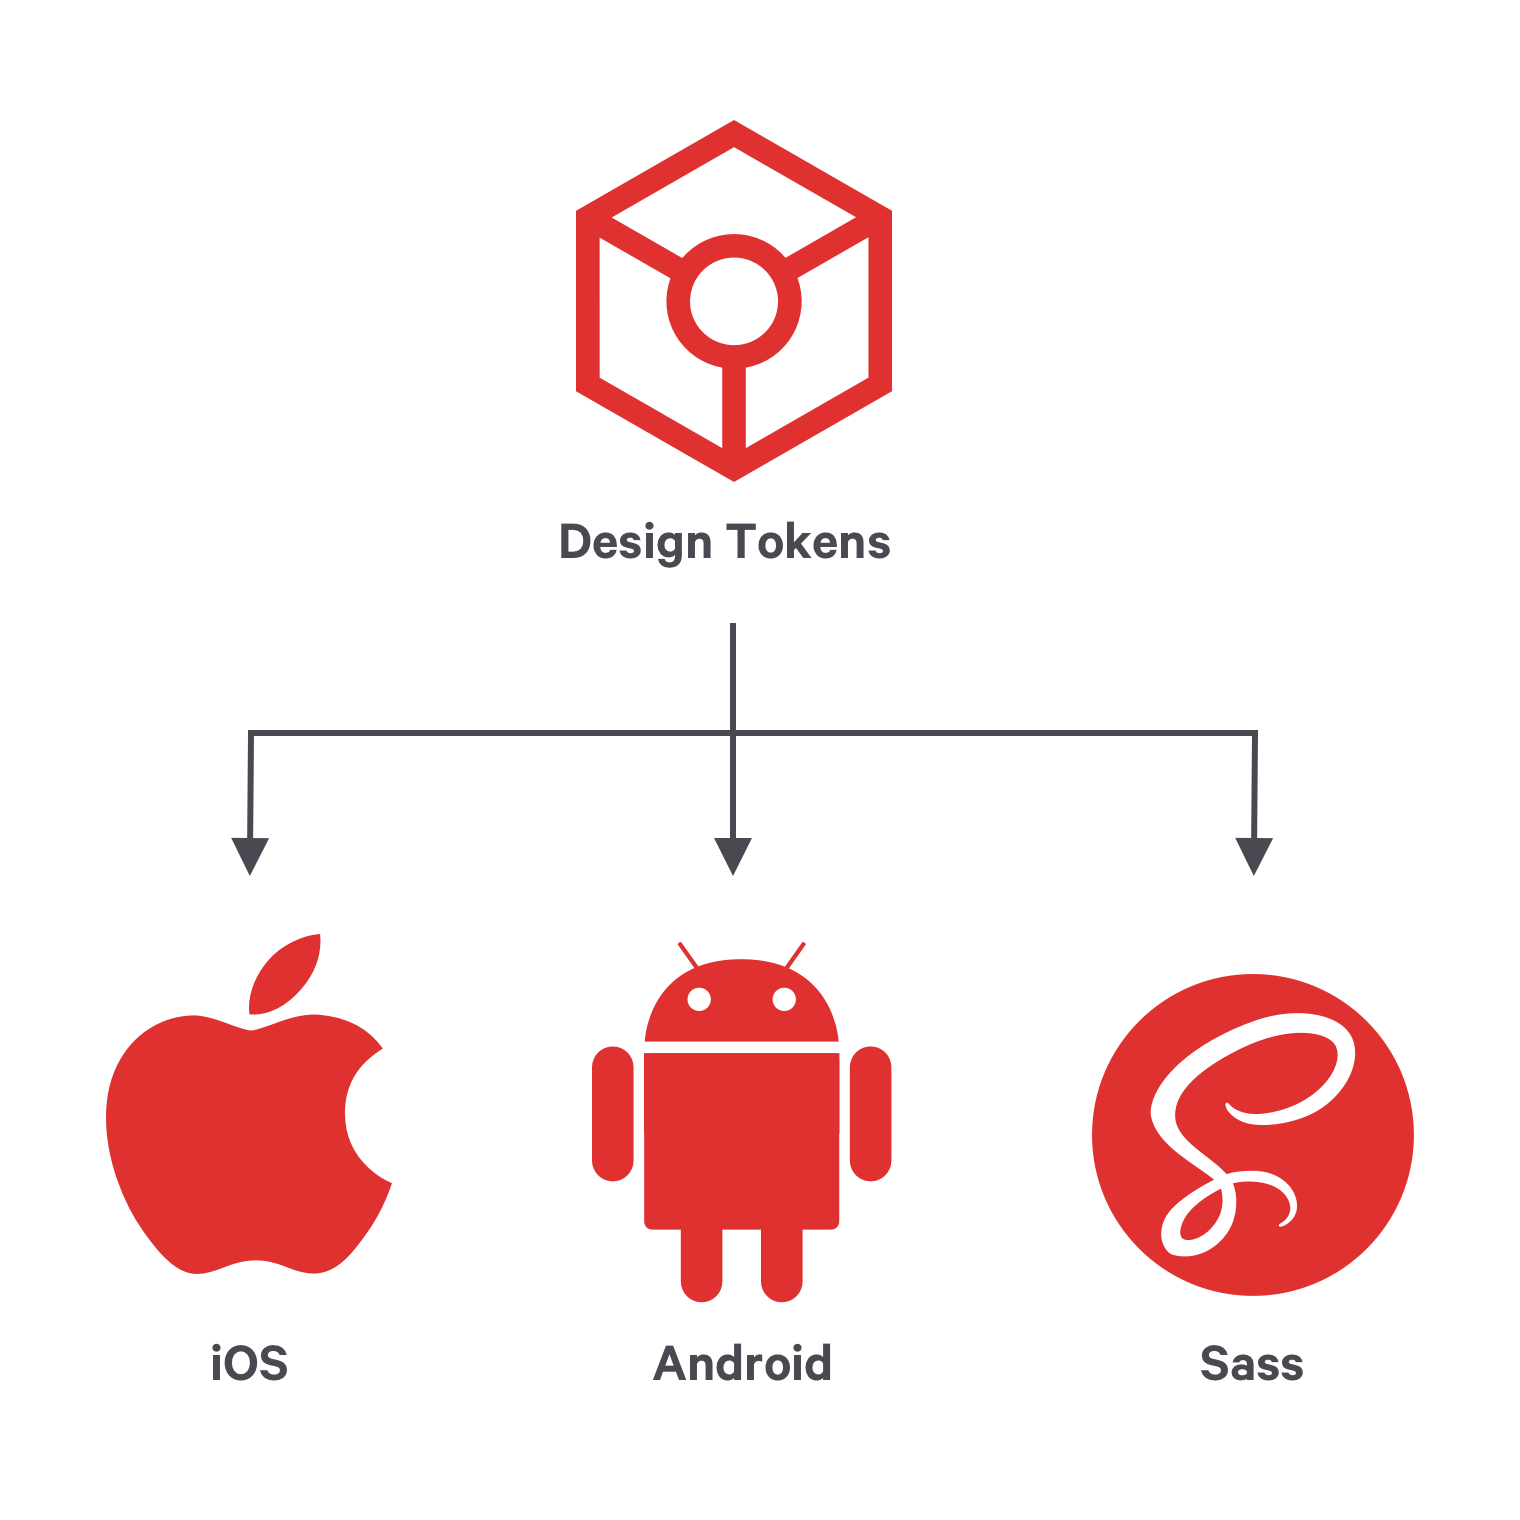 Demonstrating how design tokens' single source of truth simultaneously updates iOS, Android, and Sass.